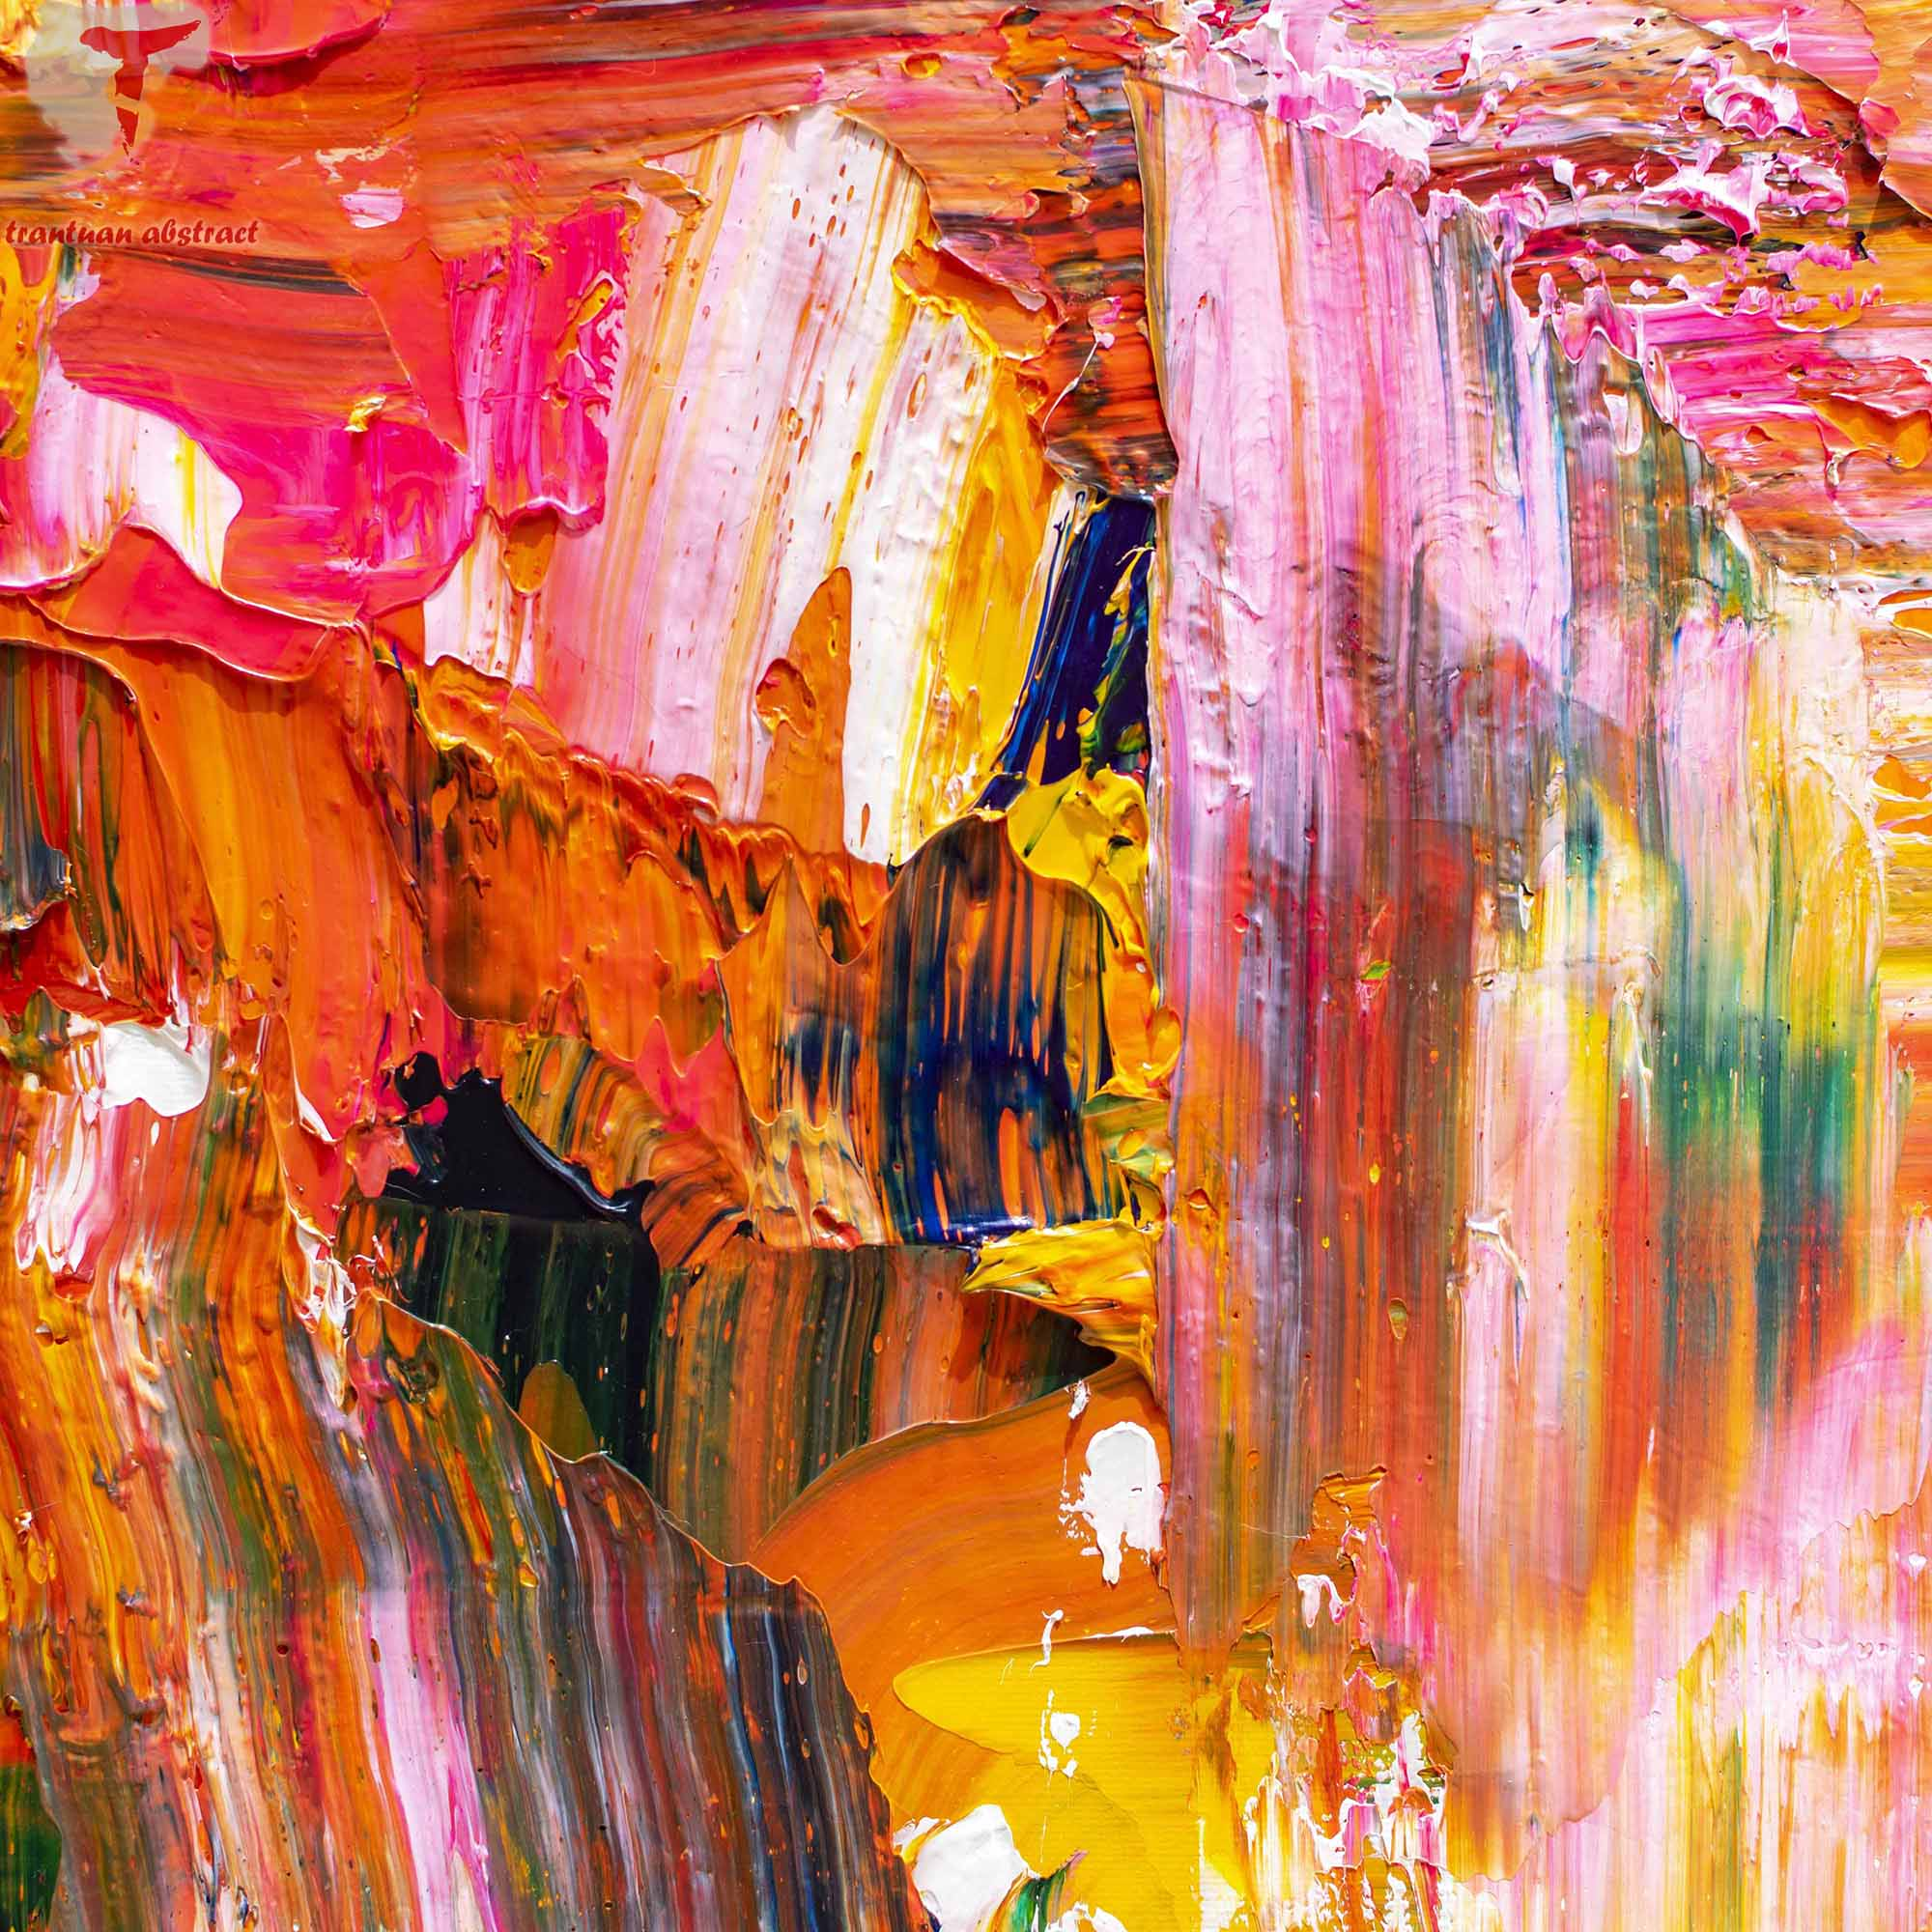 Tran Tuan Abstract Space of Happiness 2021 135 x 80 x 5 cm Acrylic on Canvas Painting Detail